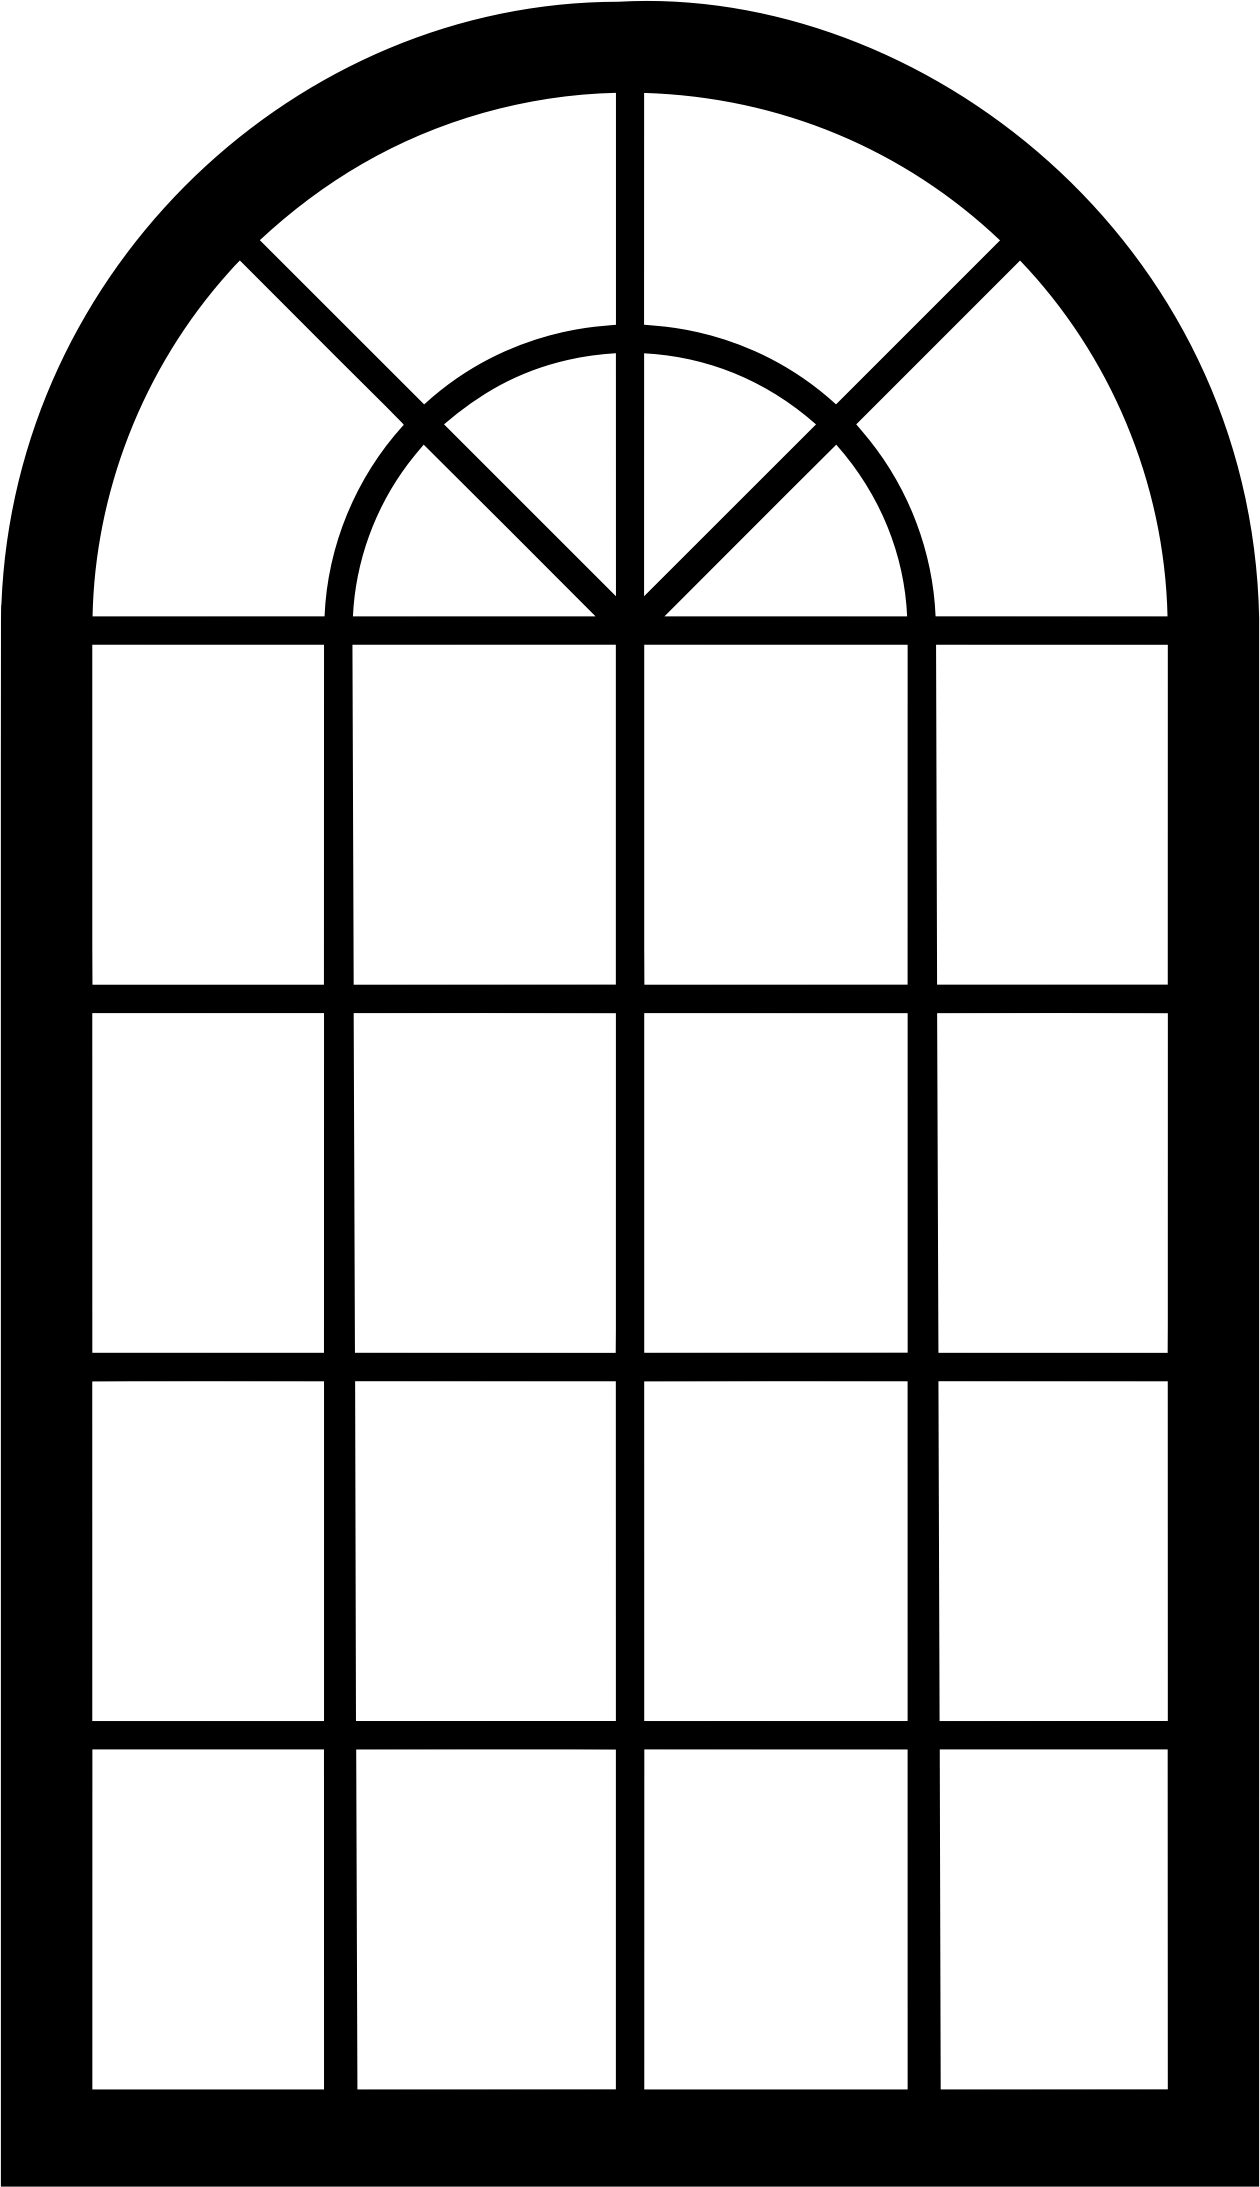 graphic free library windows vector arch window #109117689